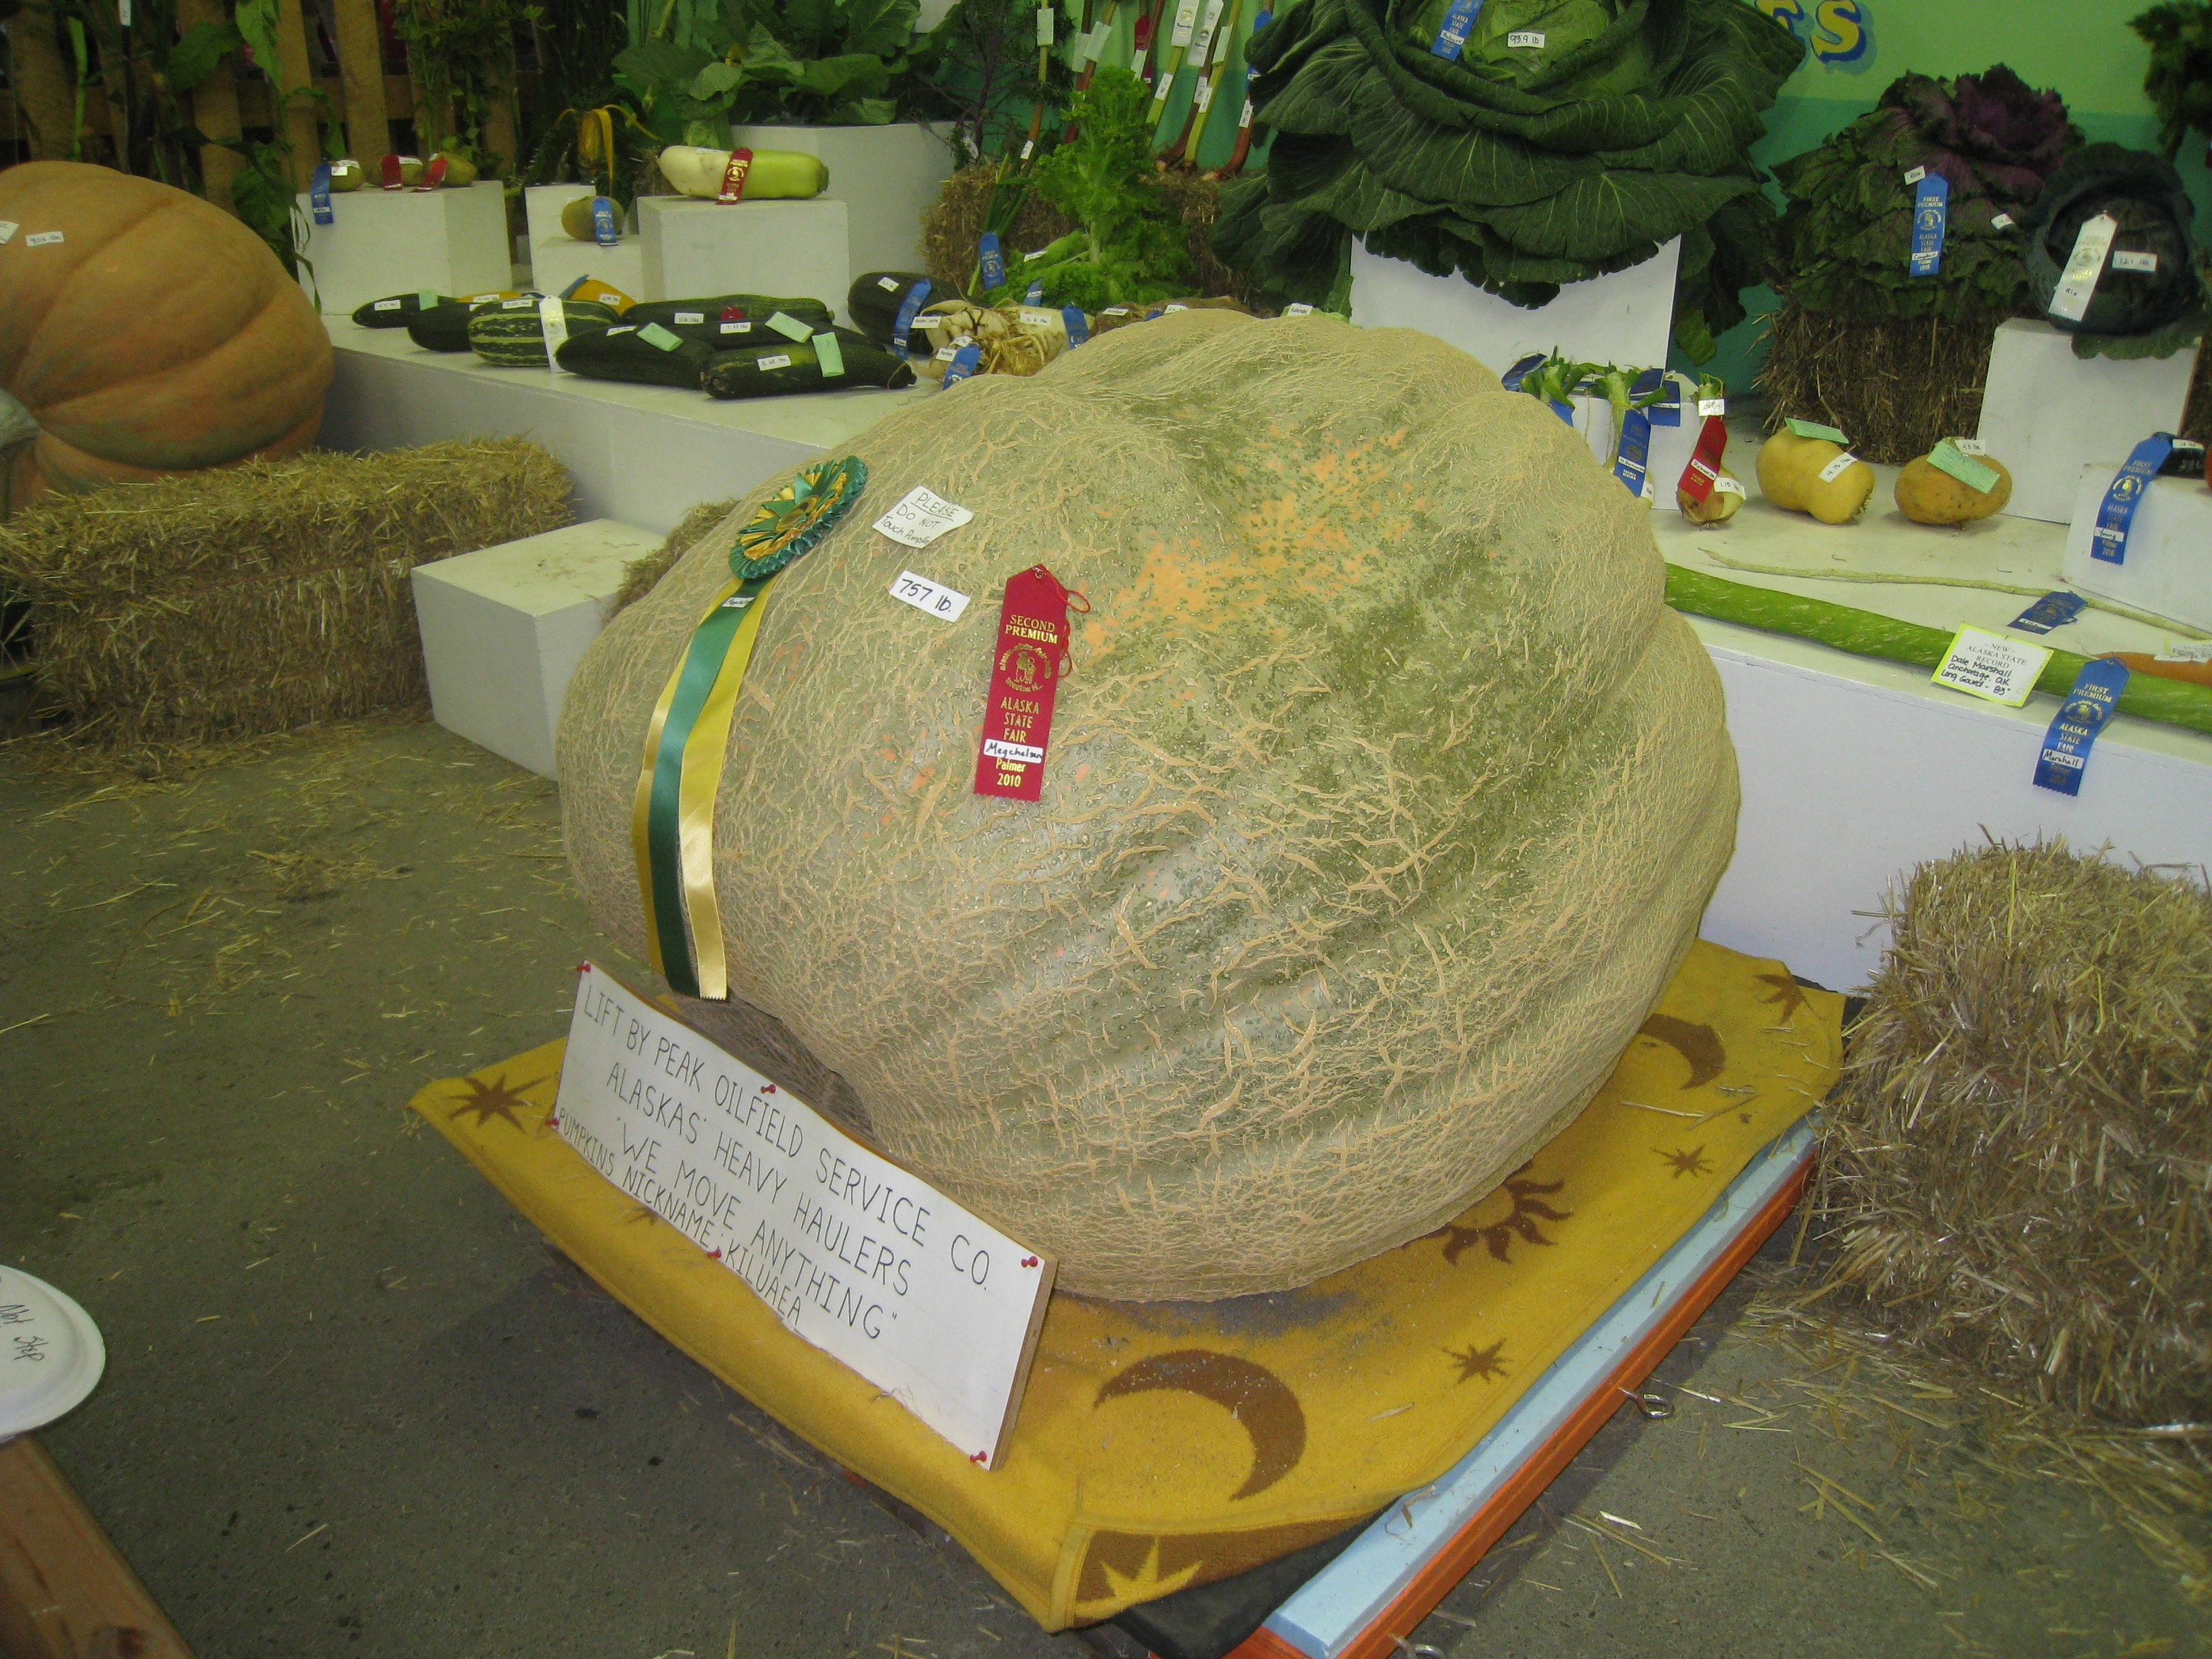 Giant melon on display